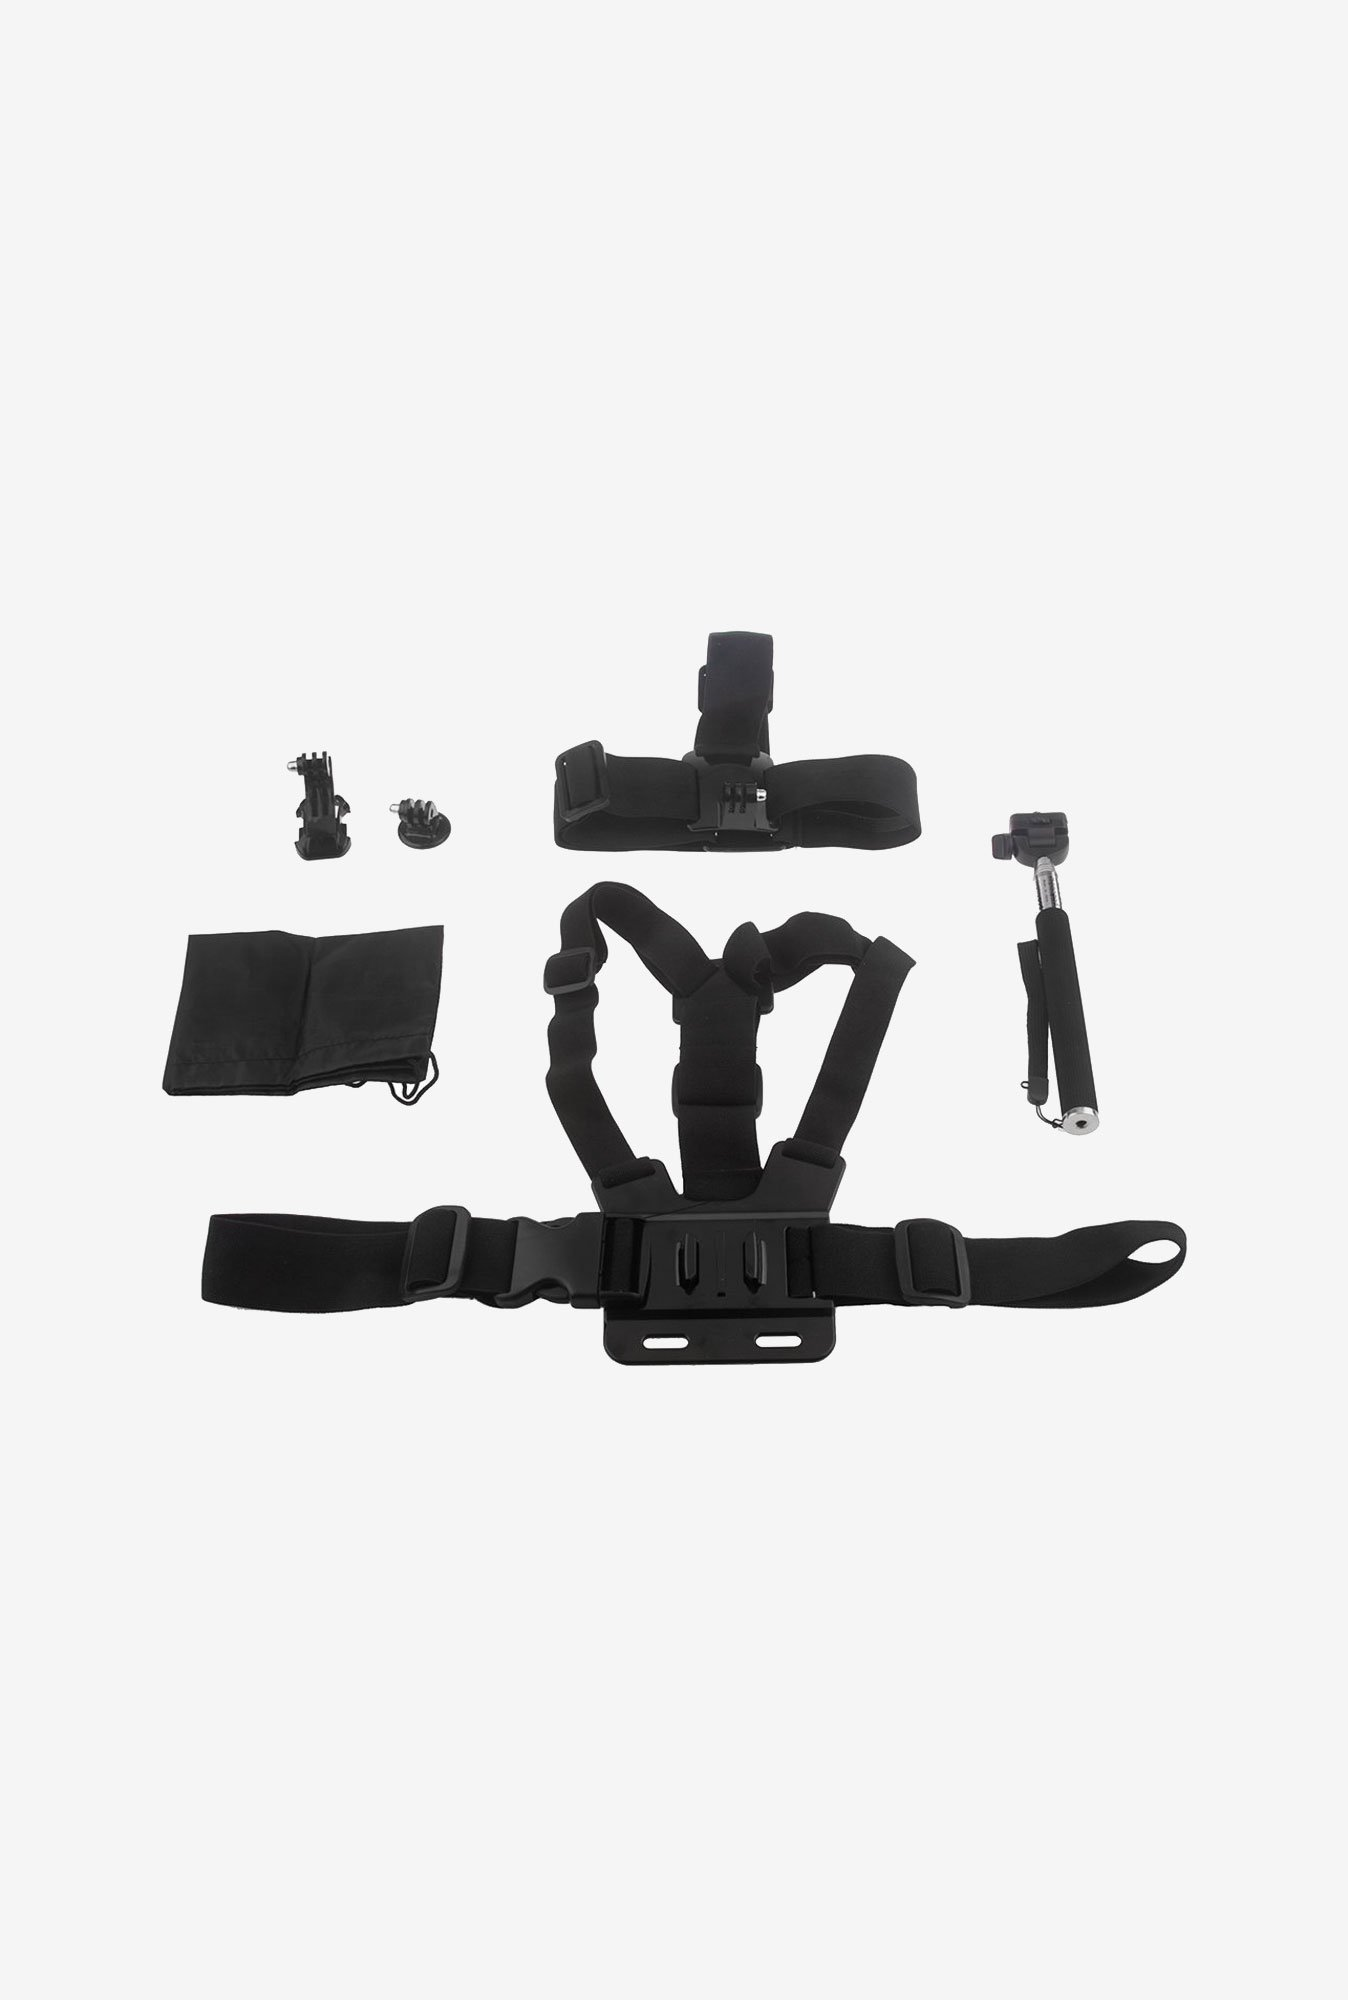 Neewer Strap Mount Harness with J Shaped Mount Adapter